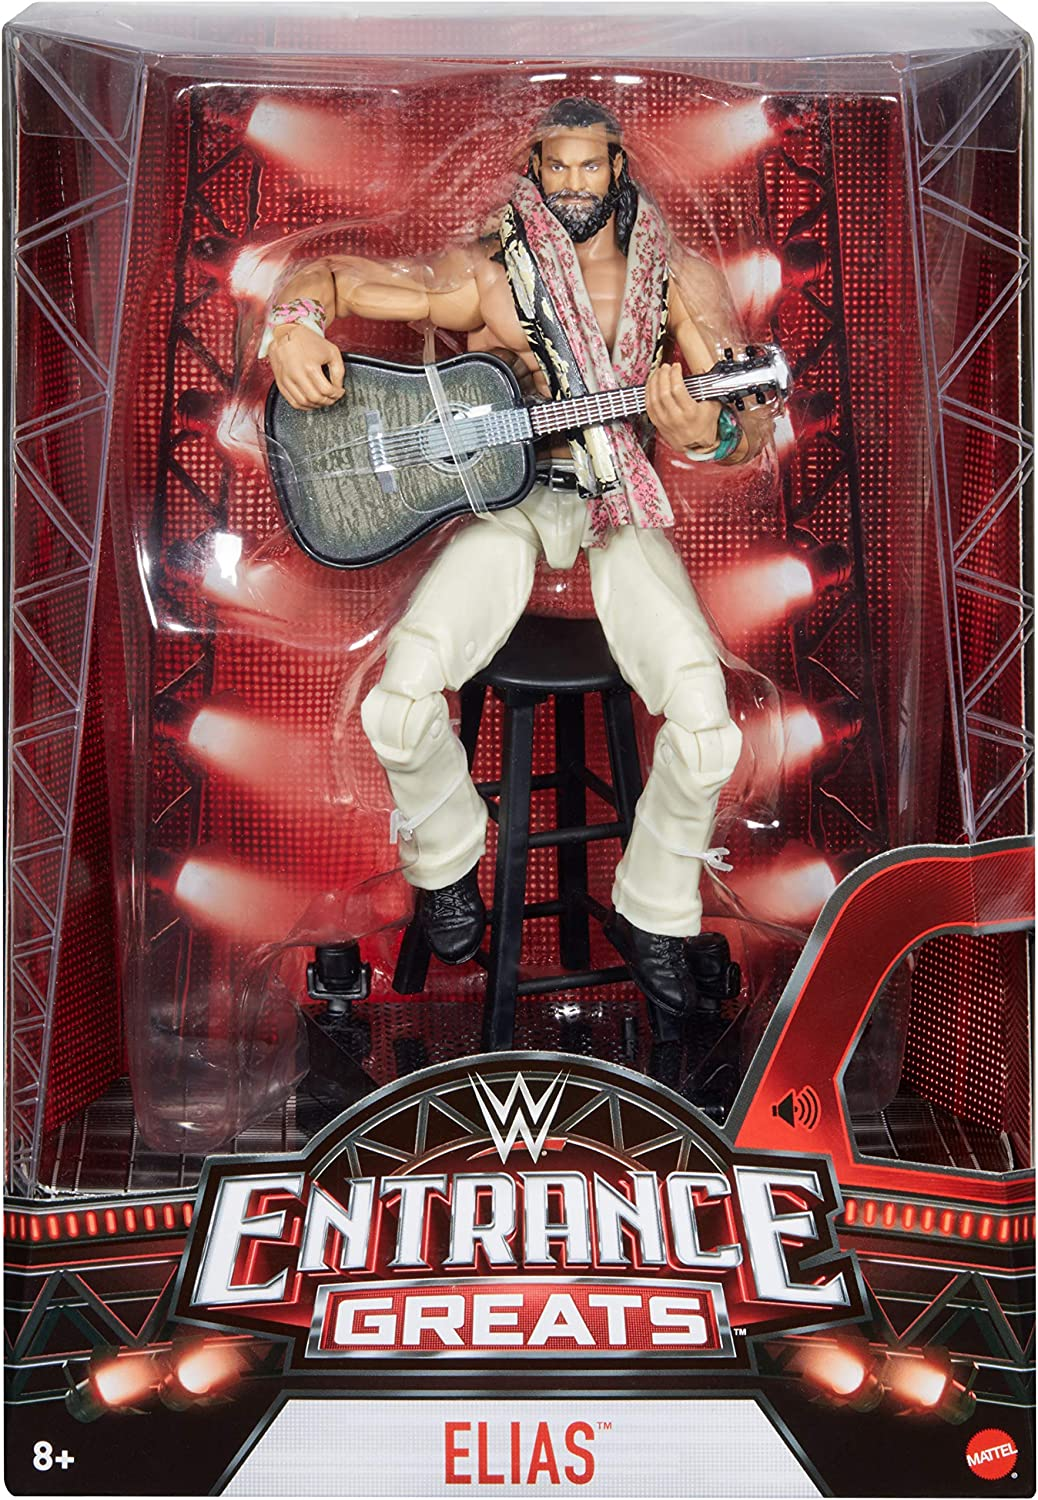 WWE Elite Collection Entrance Greats Elias Action Figure Mattel GCM99